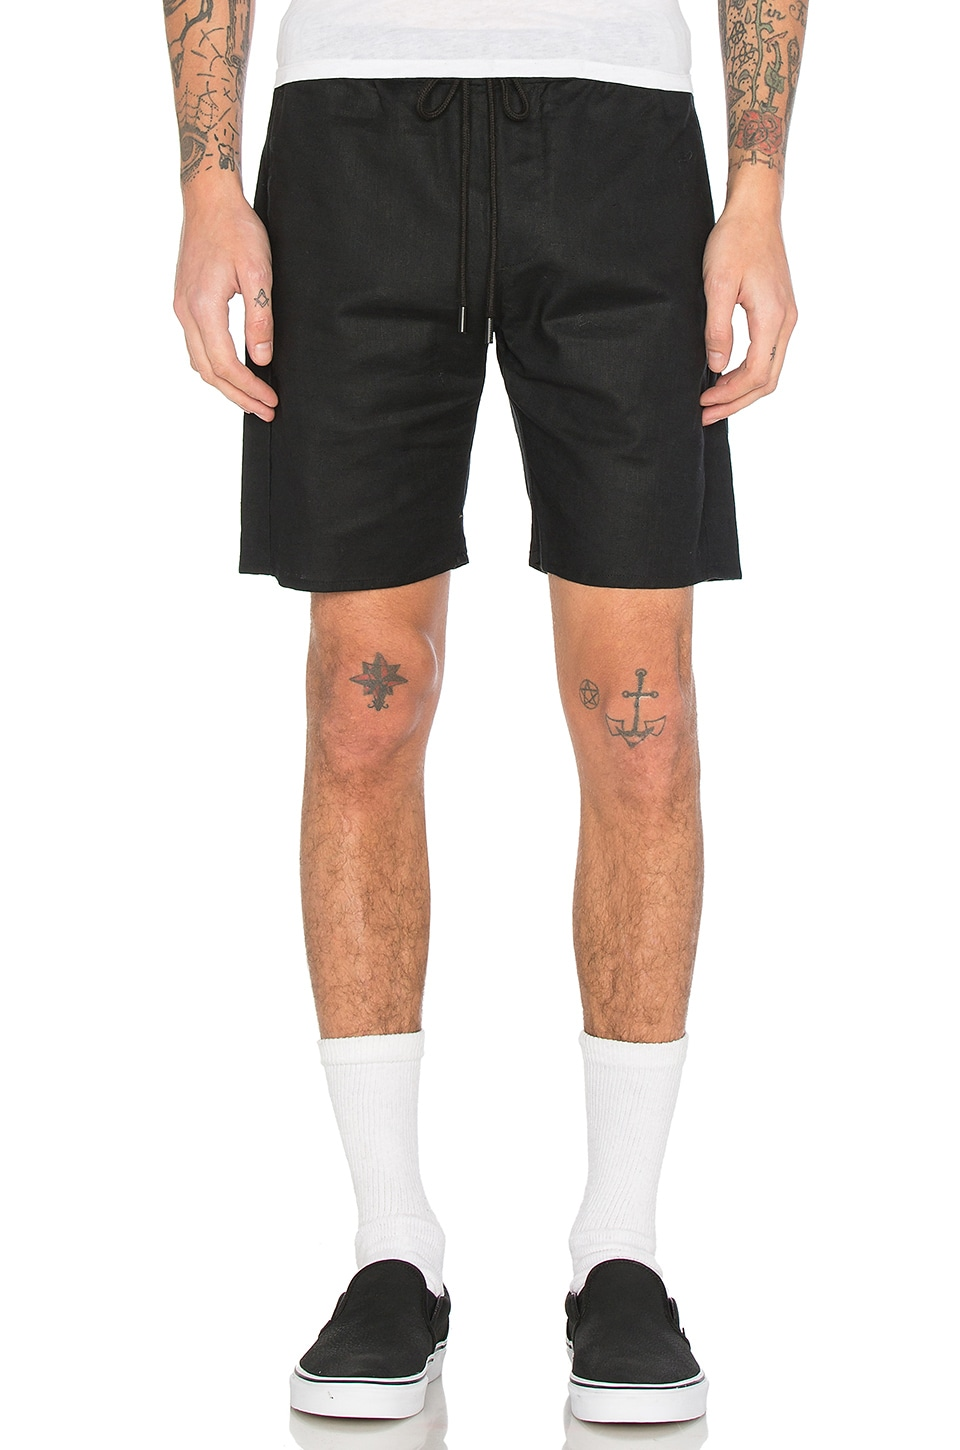 Hemsby Short by Native Youth